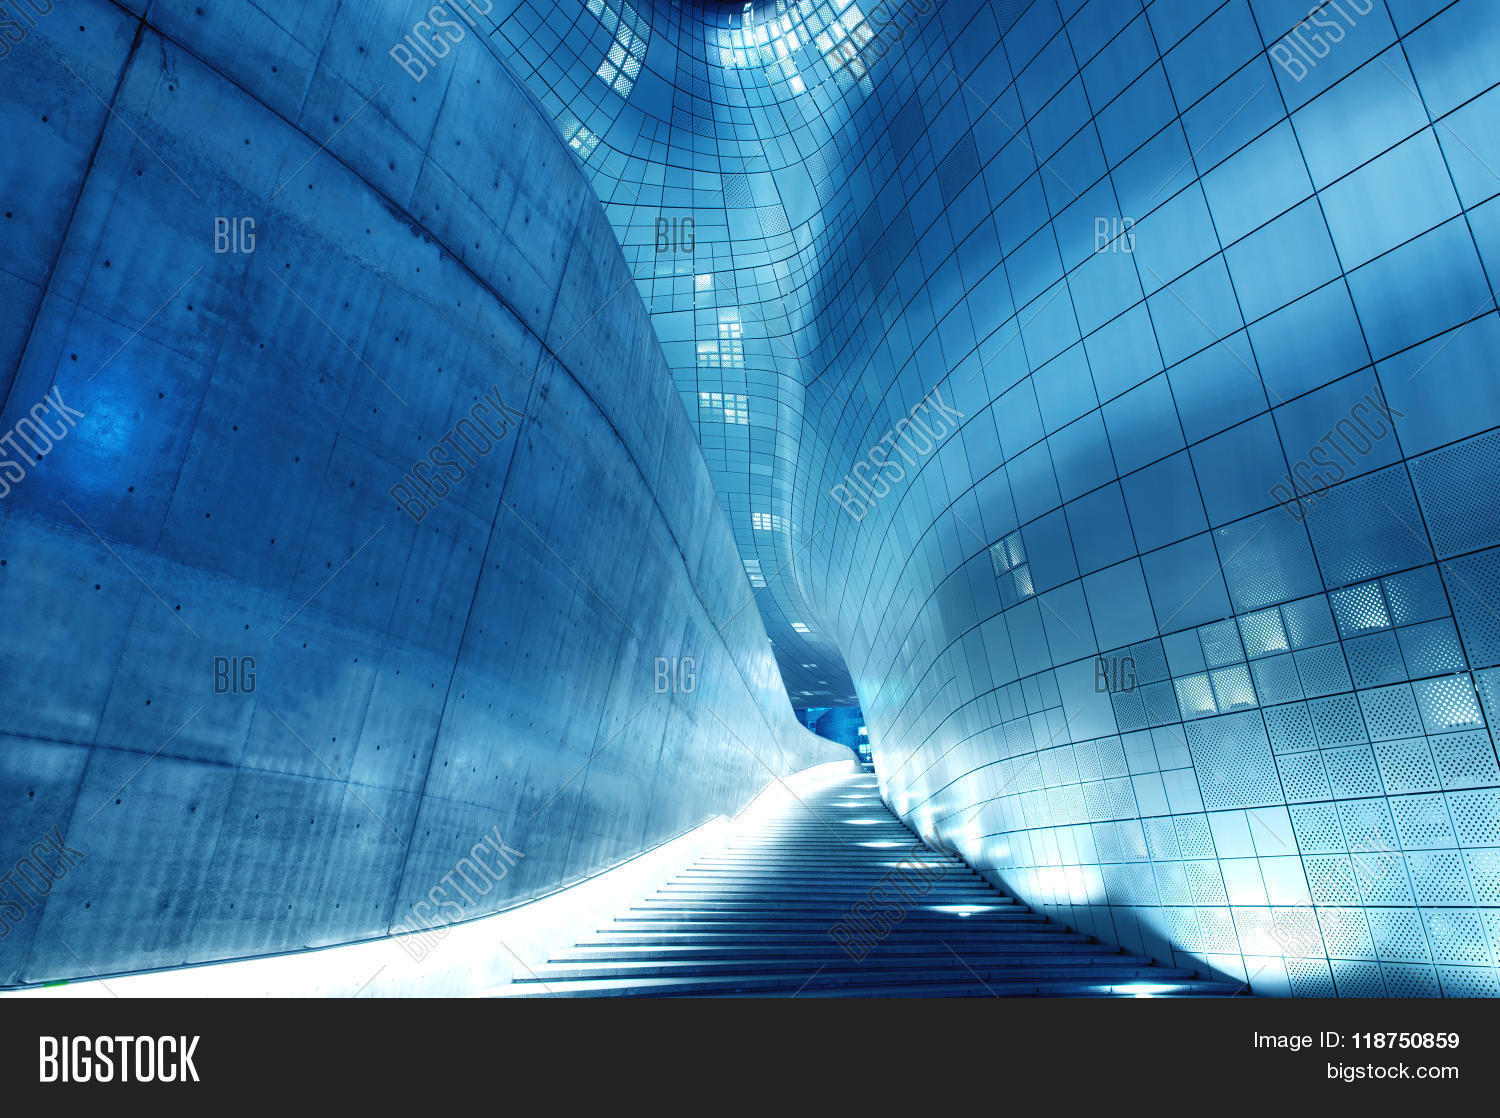 Dongdaemun Design Image Photo Free Trial Bigstock